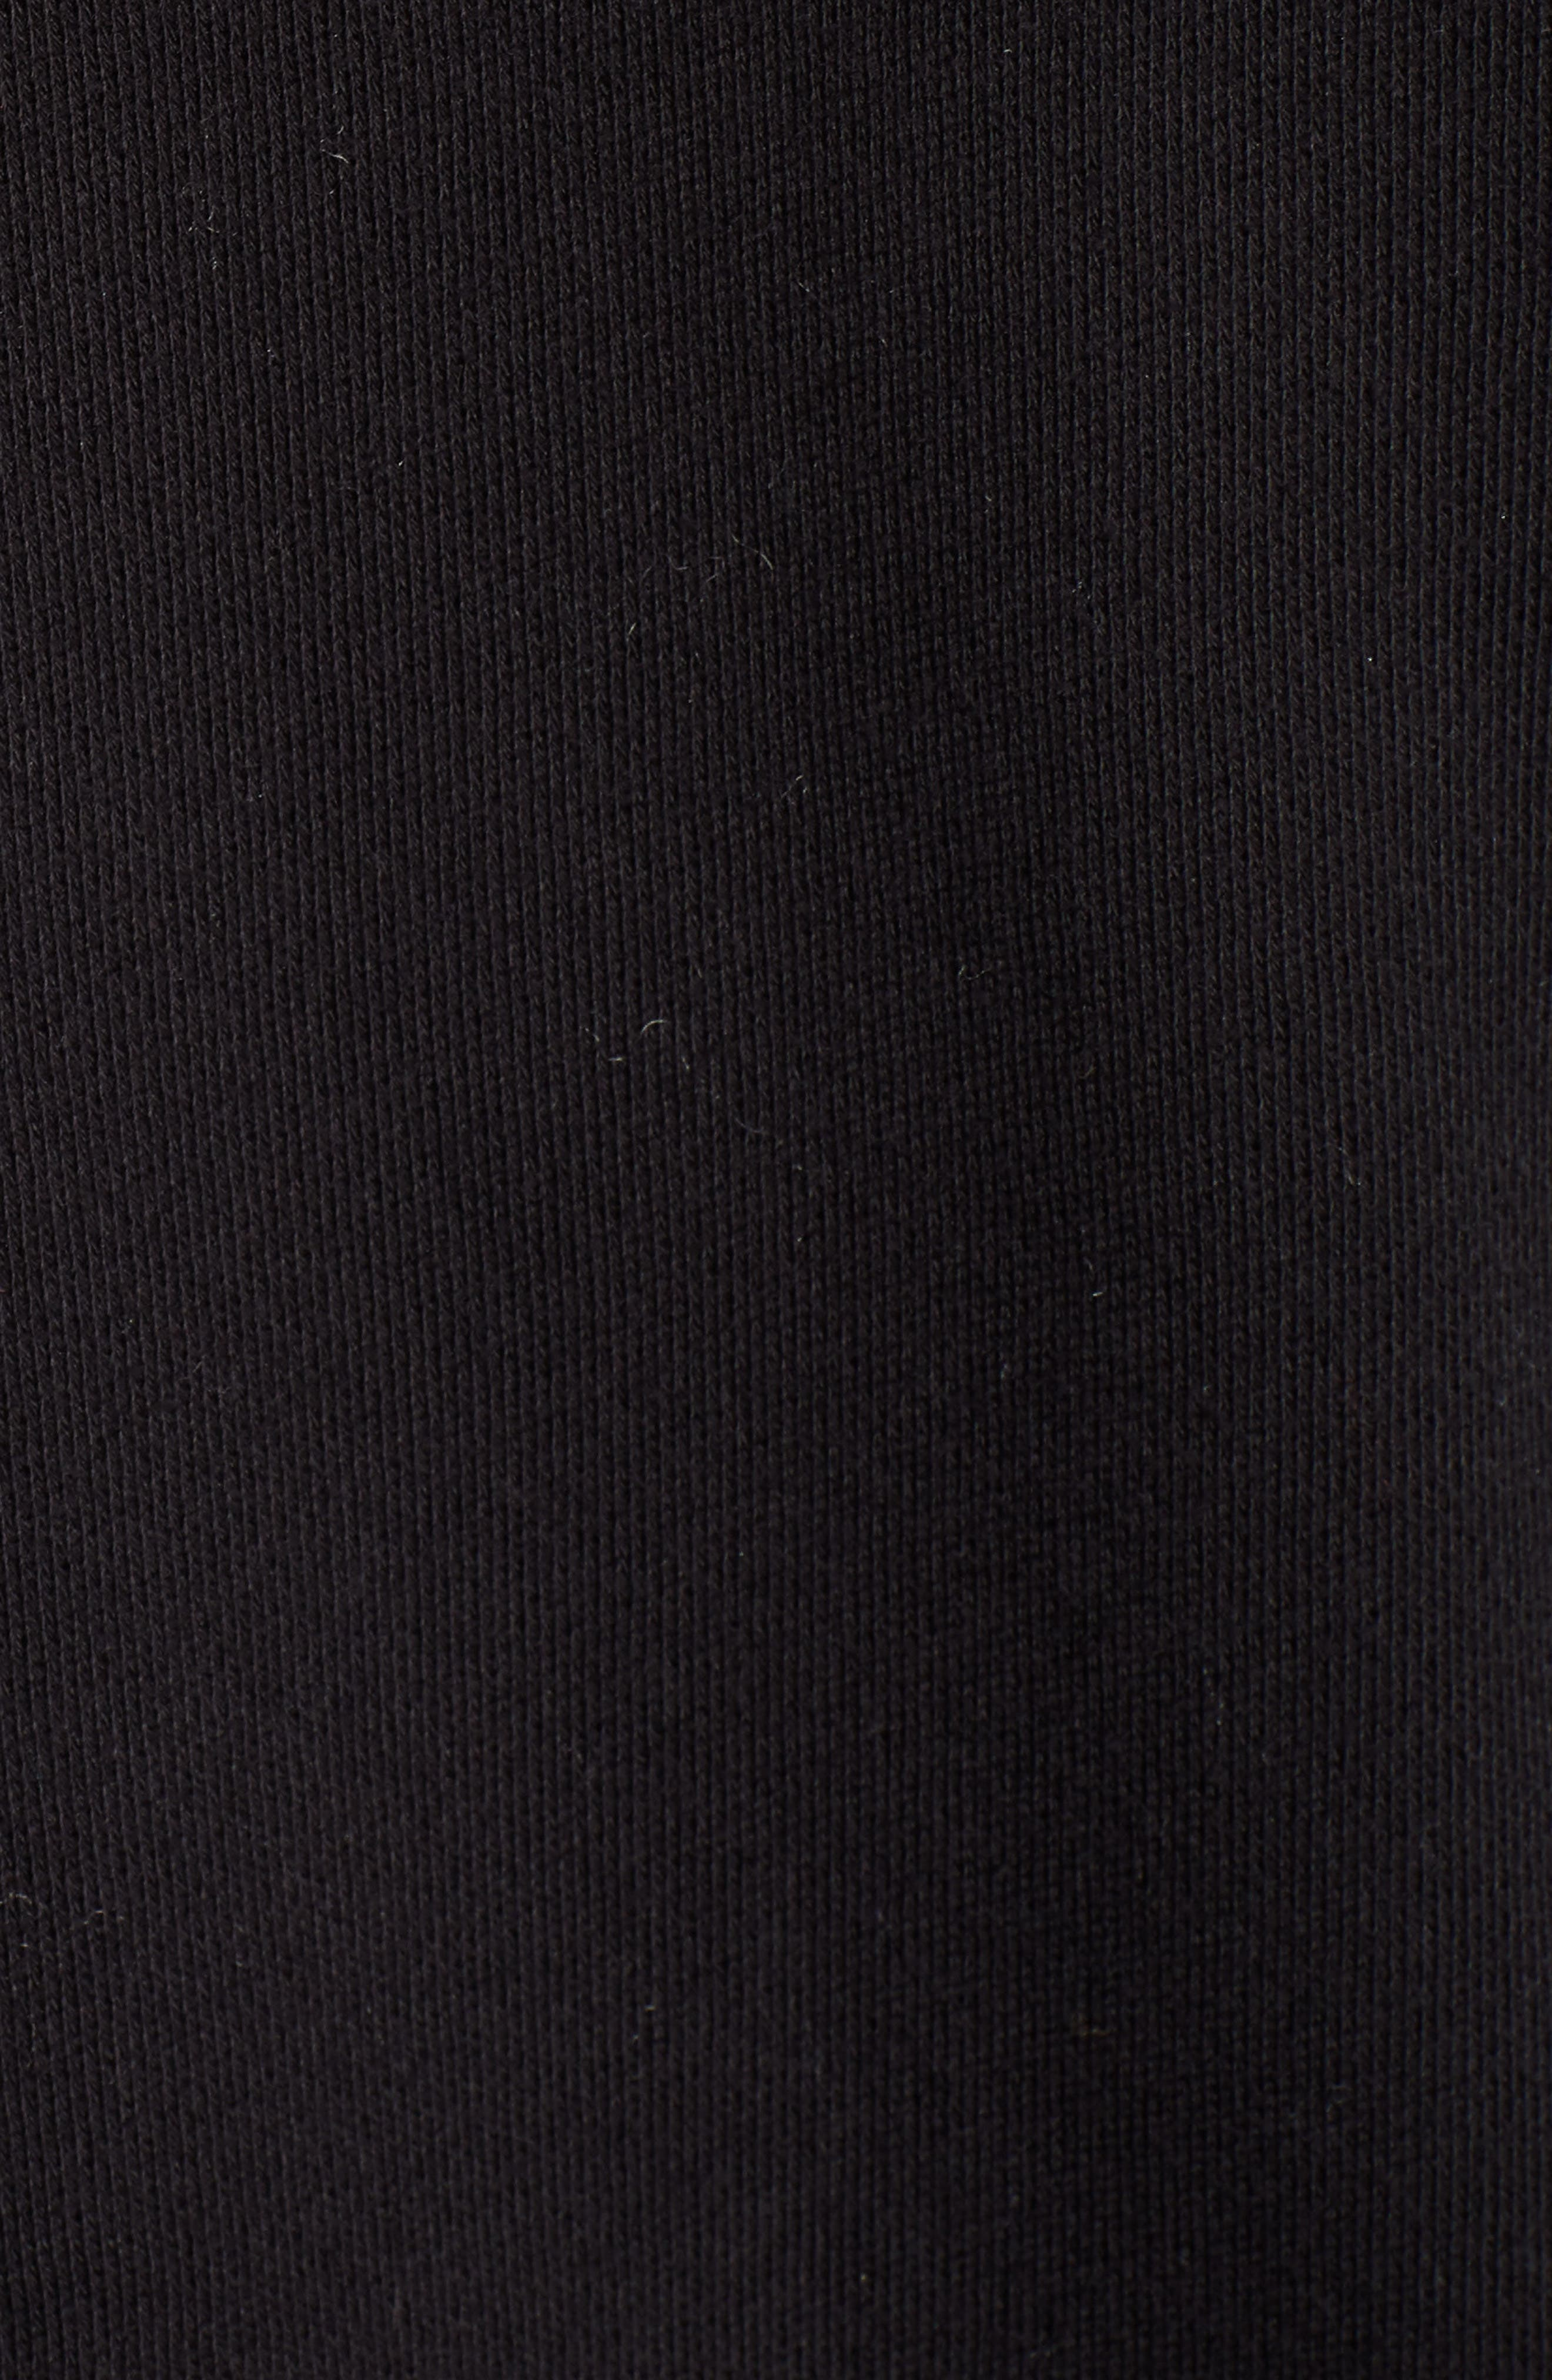 French Terry Open Front Cotton Cardigan,                             Alternate thumbnail 5, color,                             BLACK